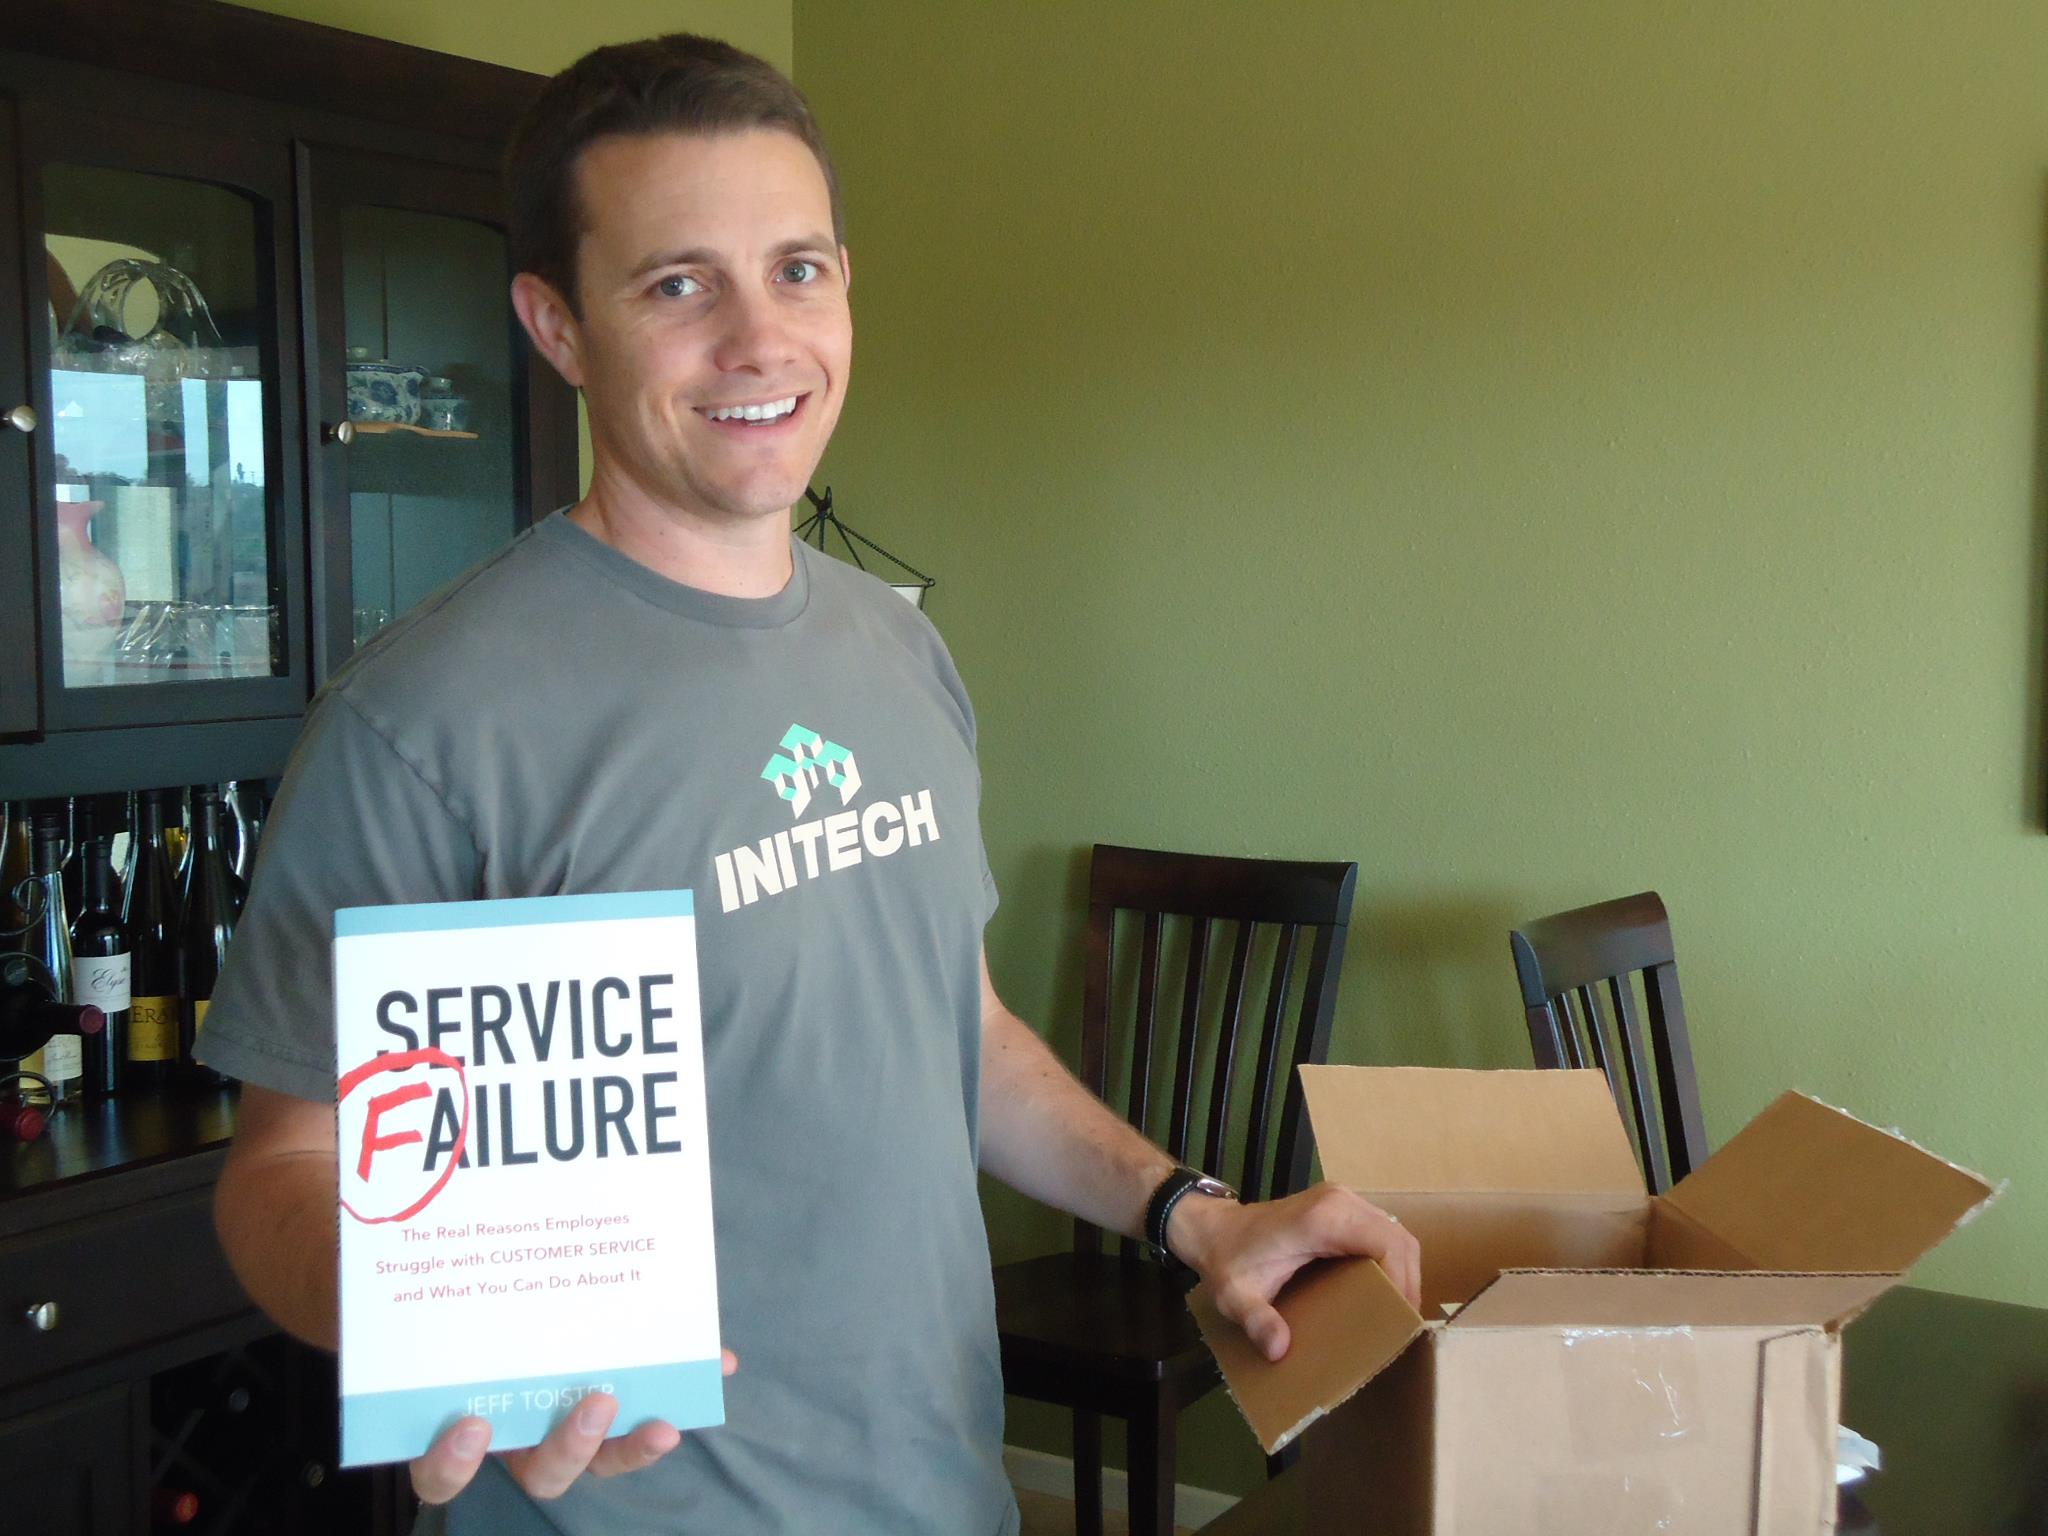 The author holding up a defective copy of his book, Service Failure.